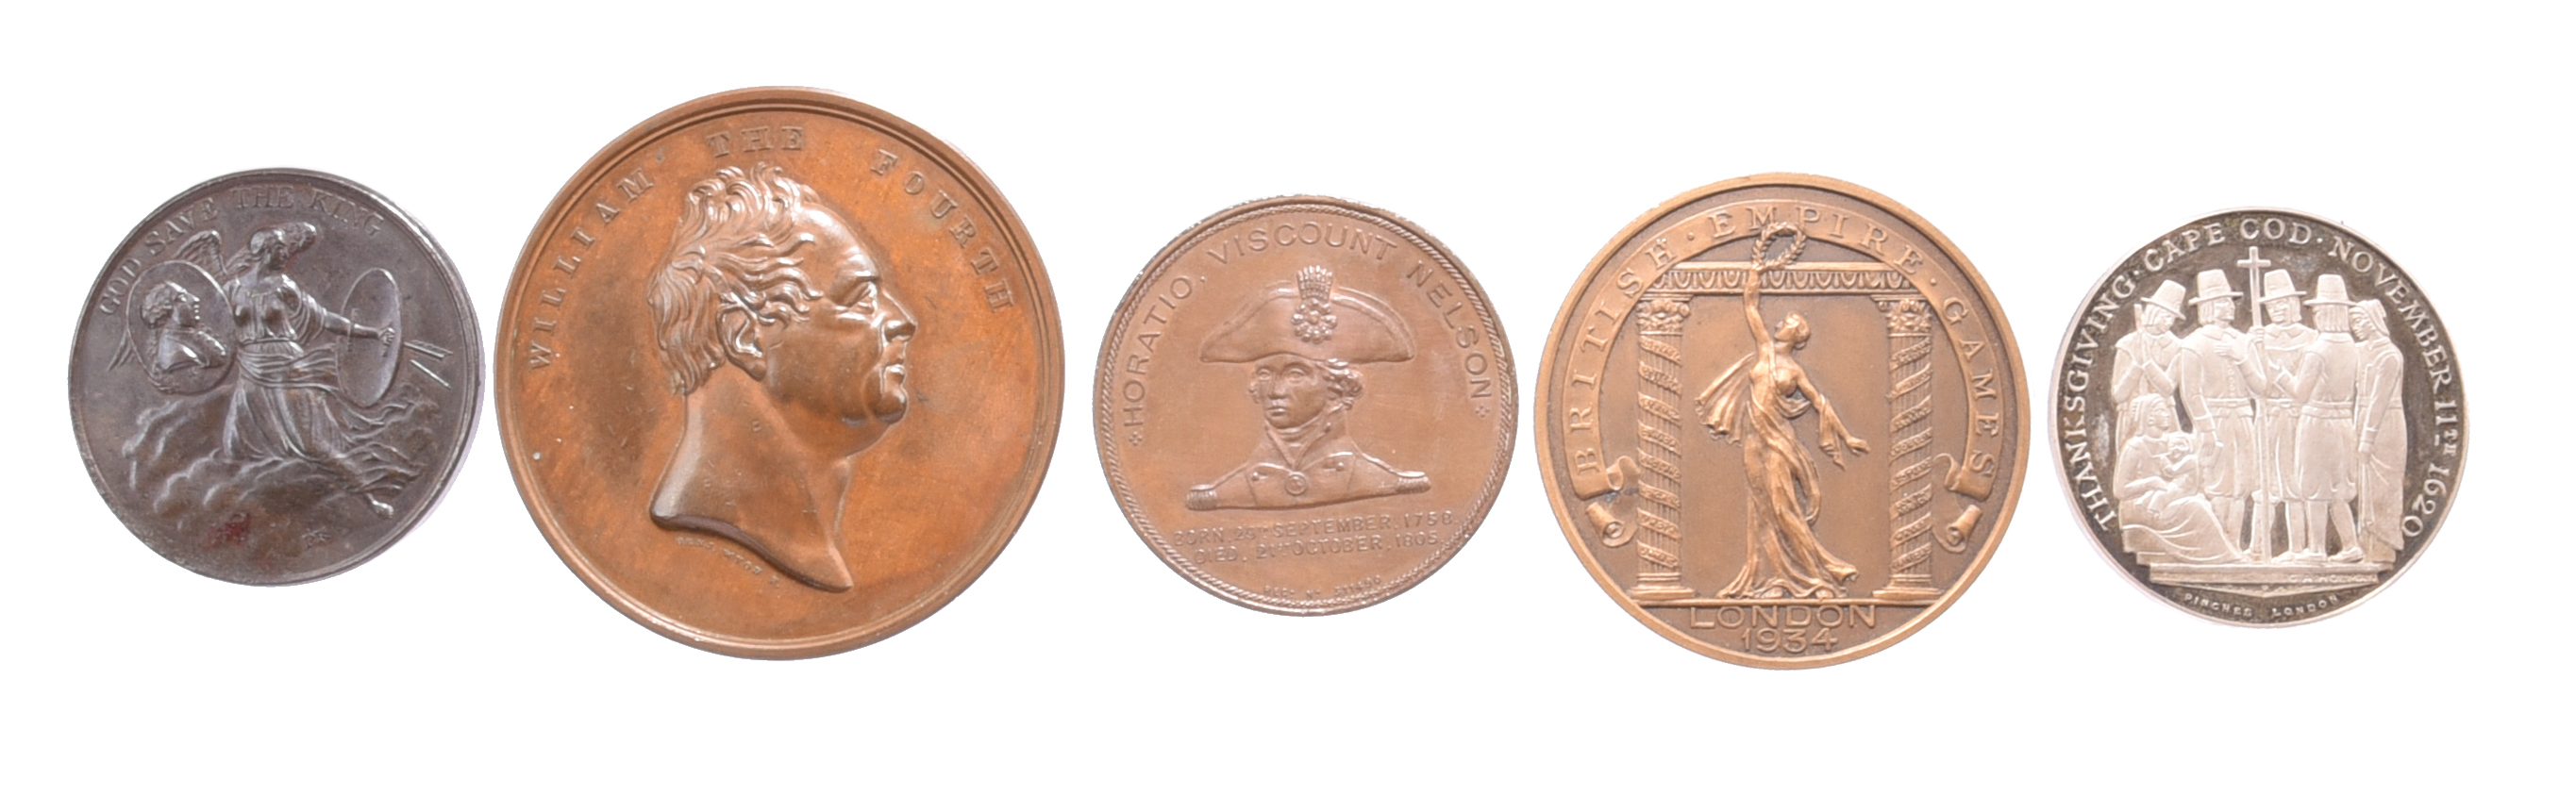 Five various historical medals: George III Preserved from Assassination 1800, AE, 38mm, an angel